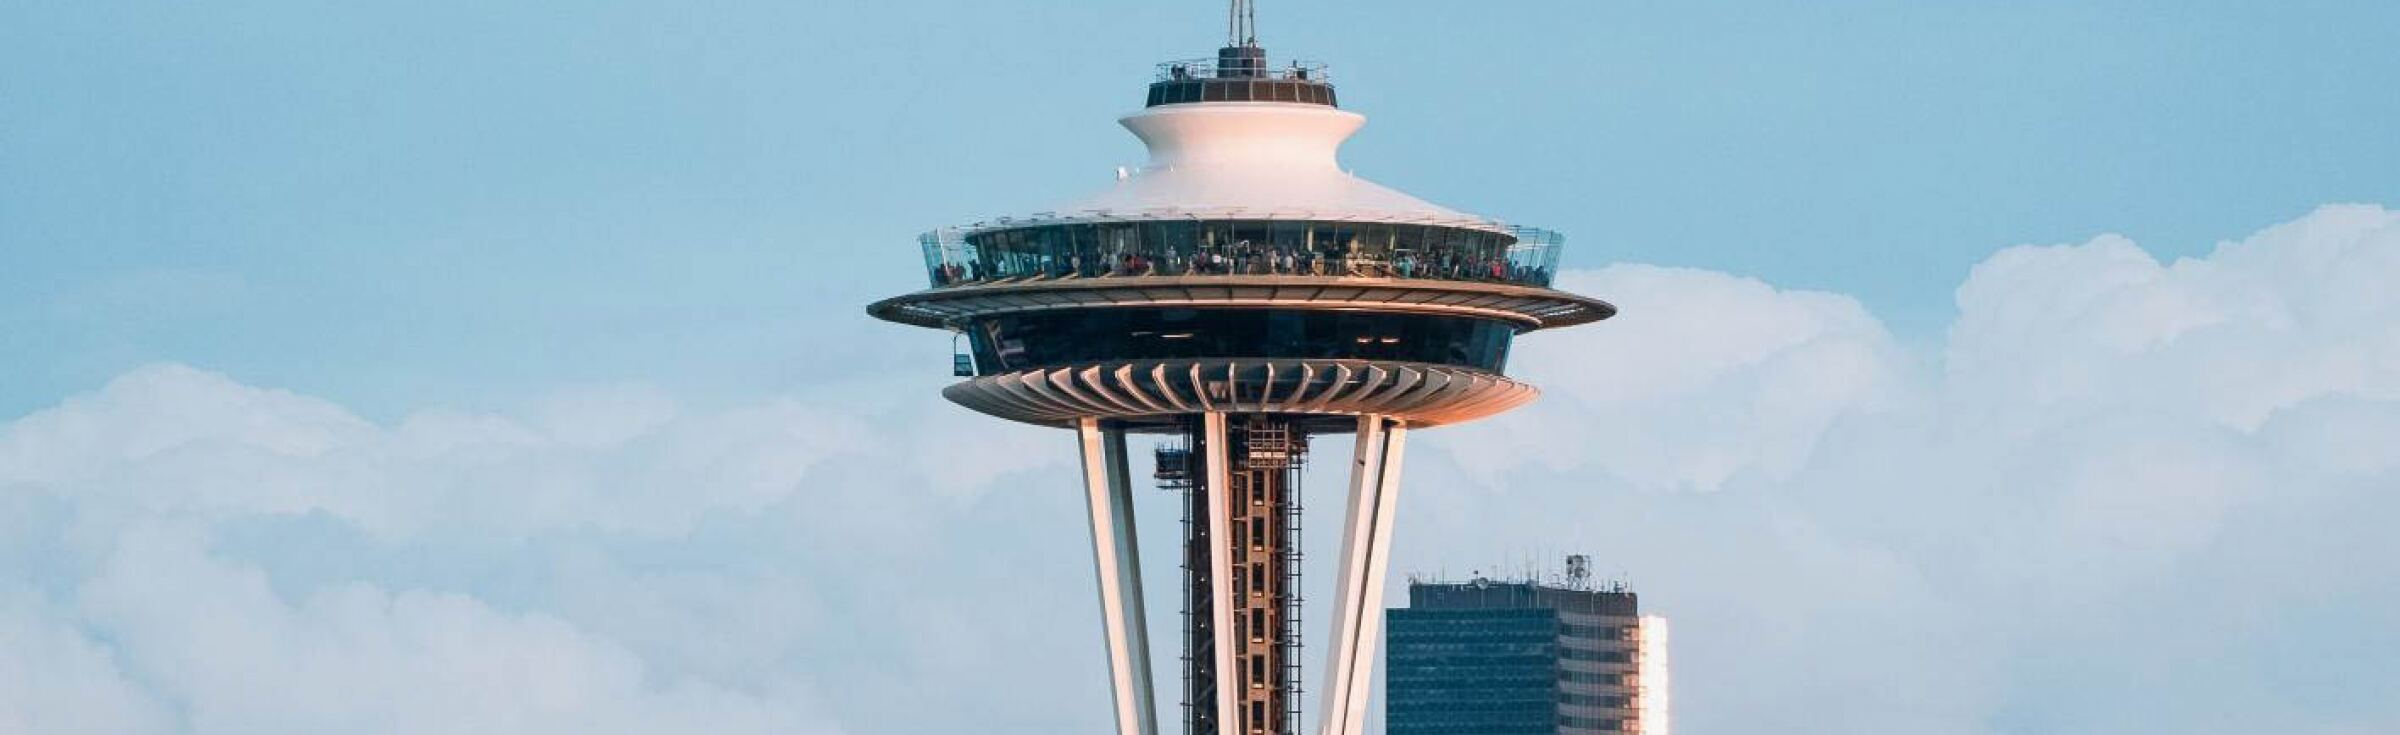 Pulp-Studio-Space-Needle-1b